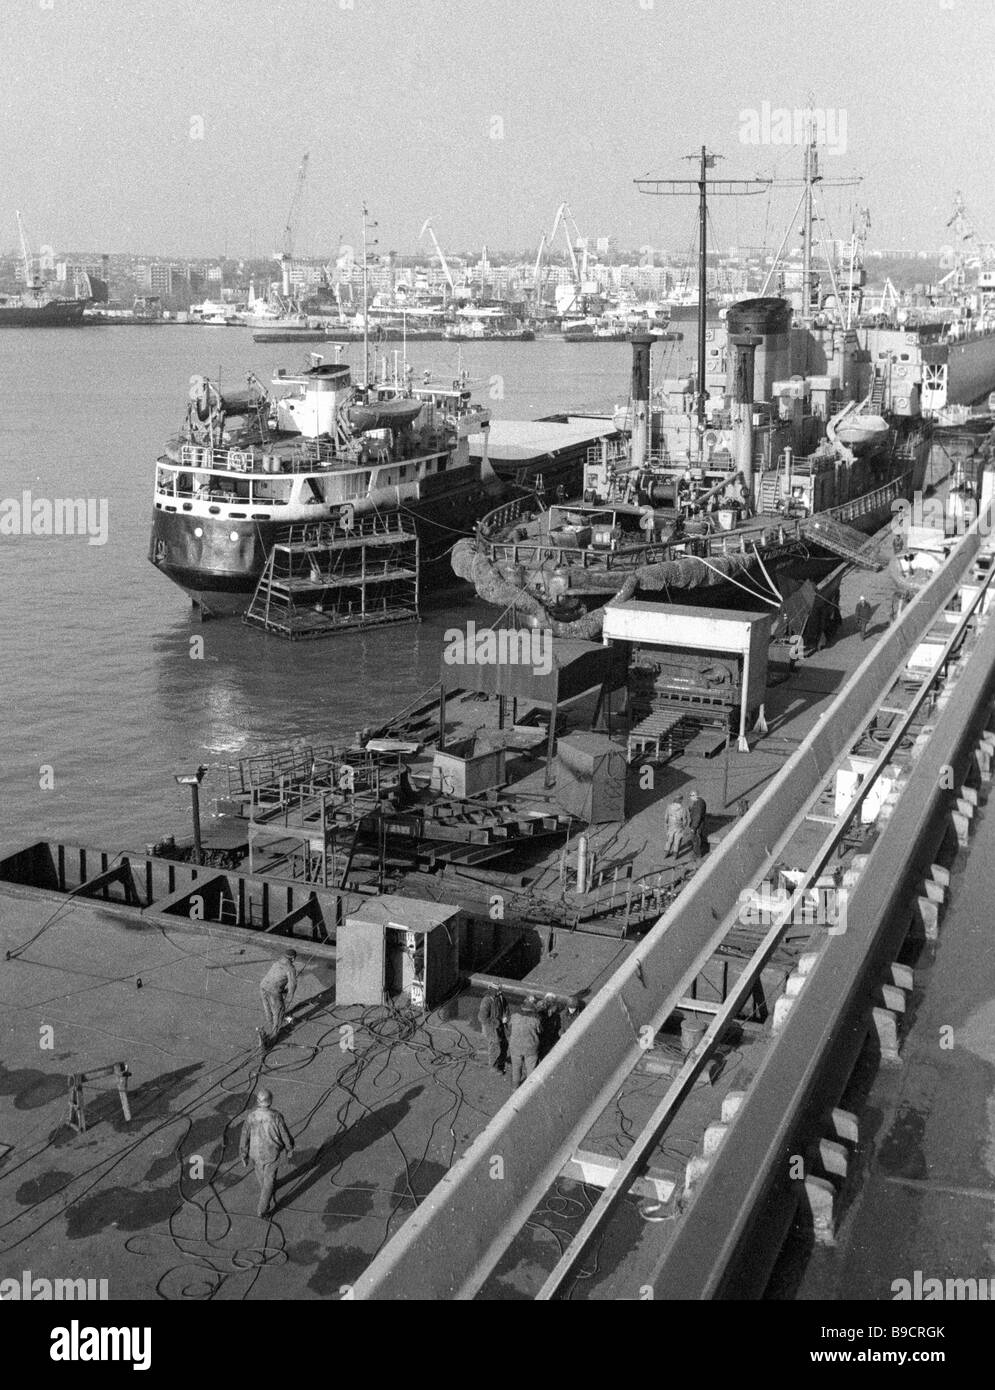 One of productions areas of Zhdanov shipyard - Stock Image